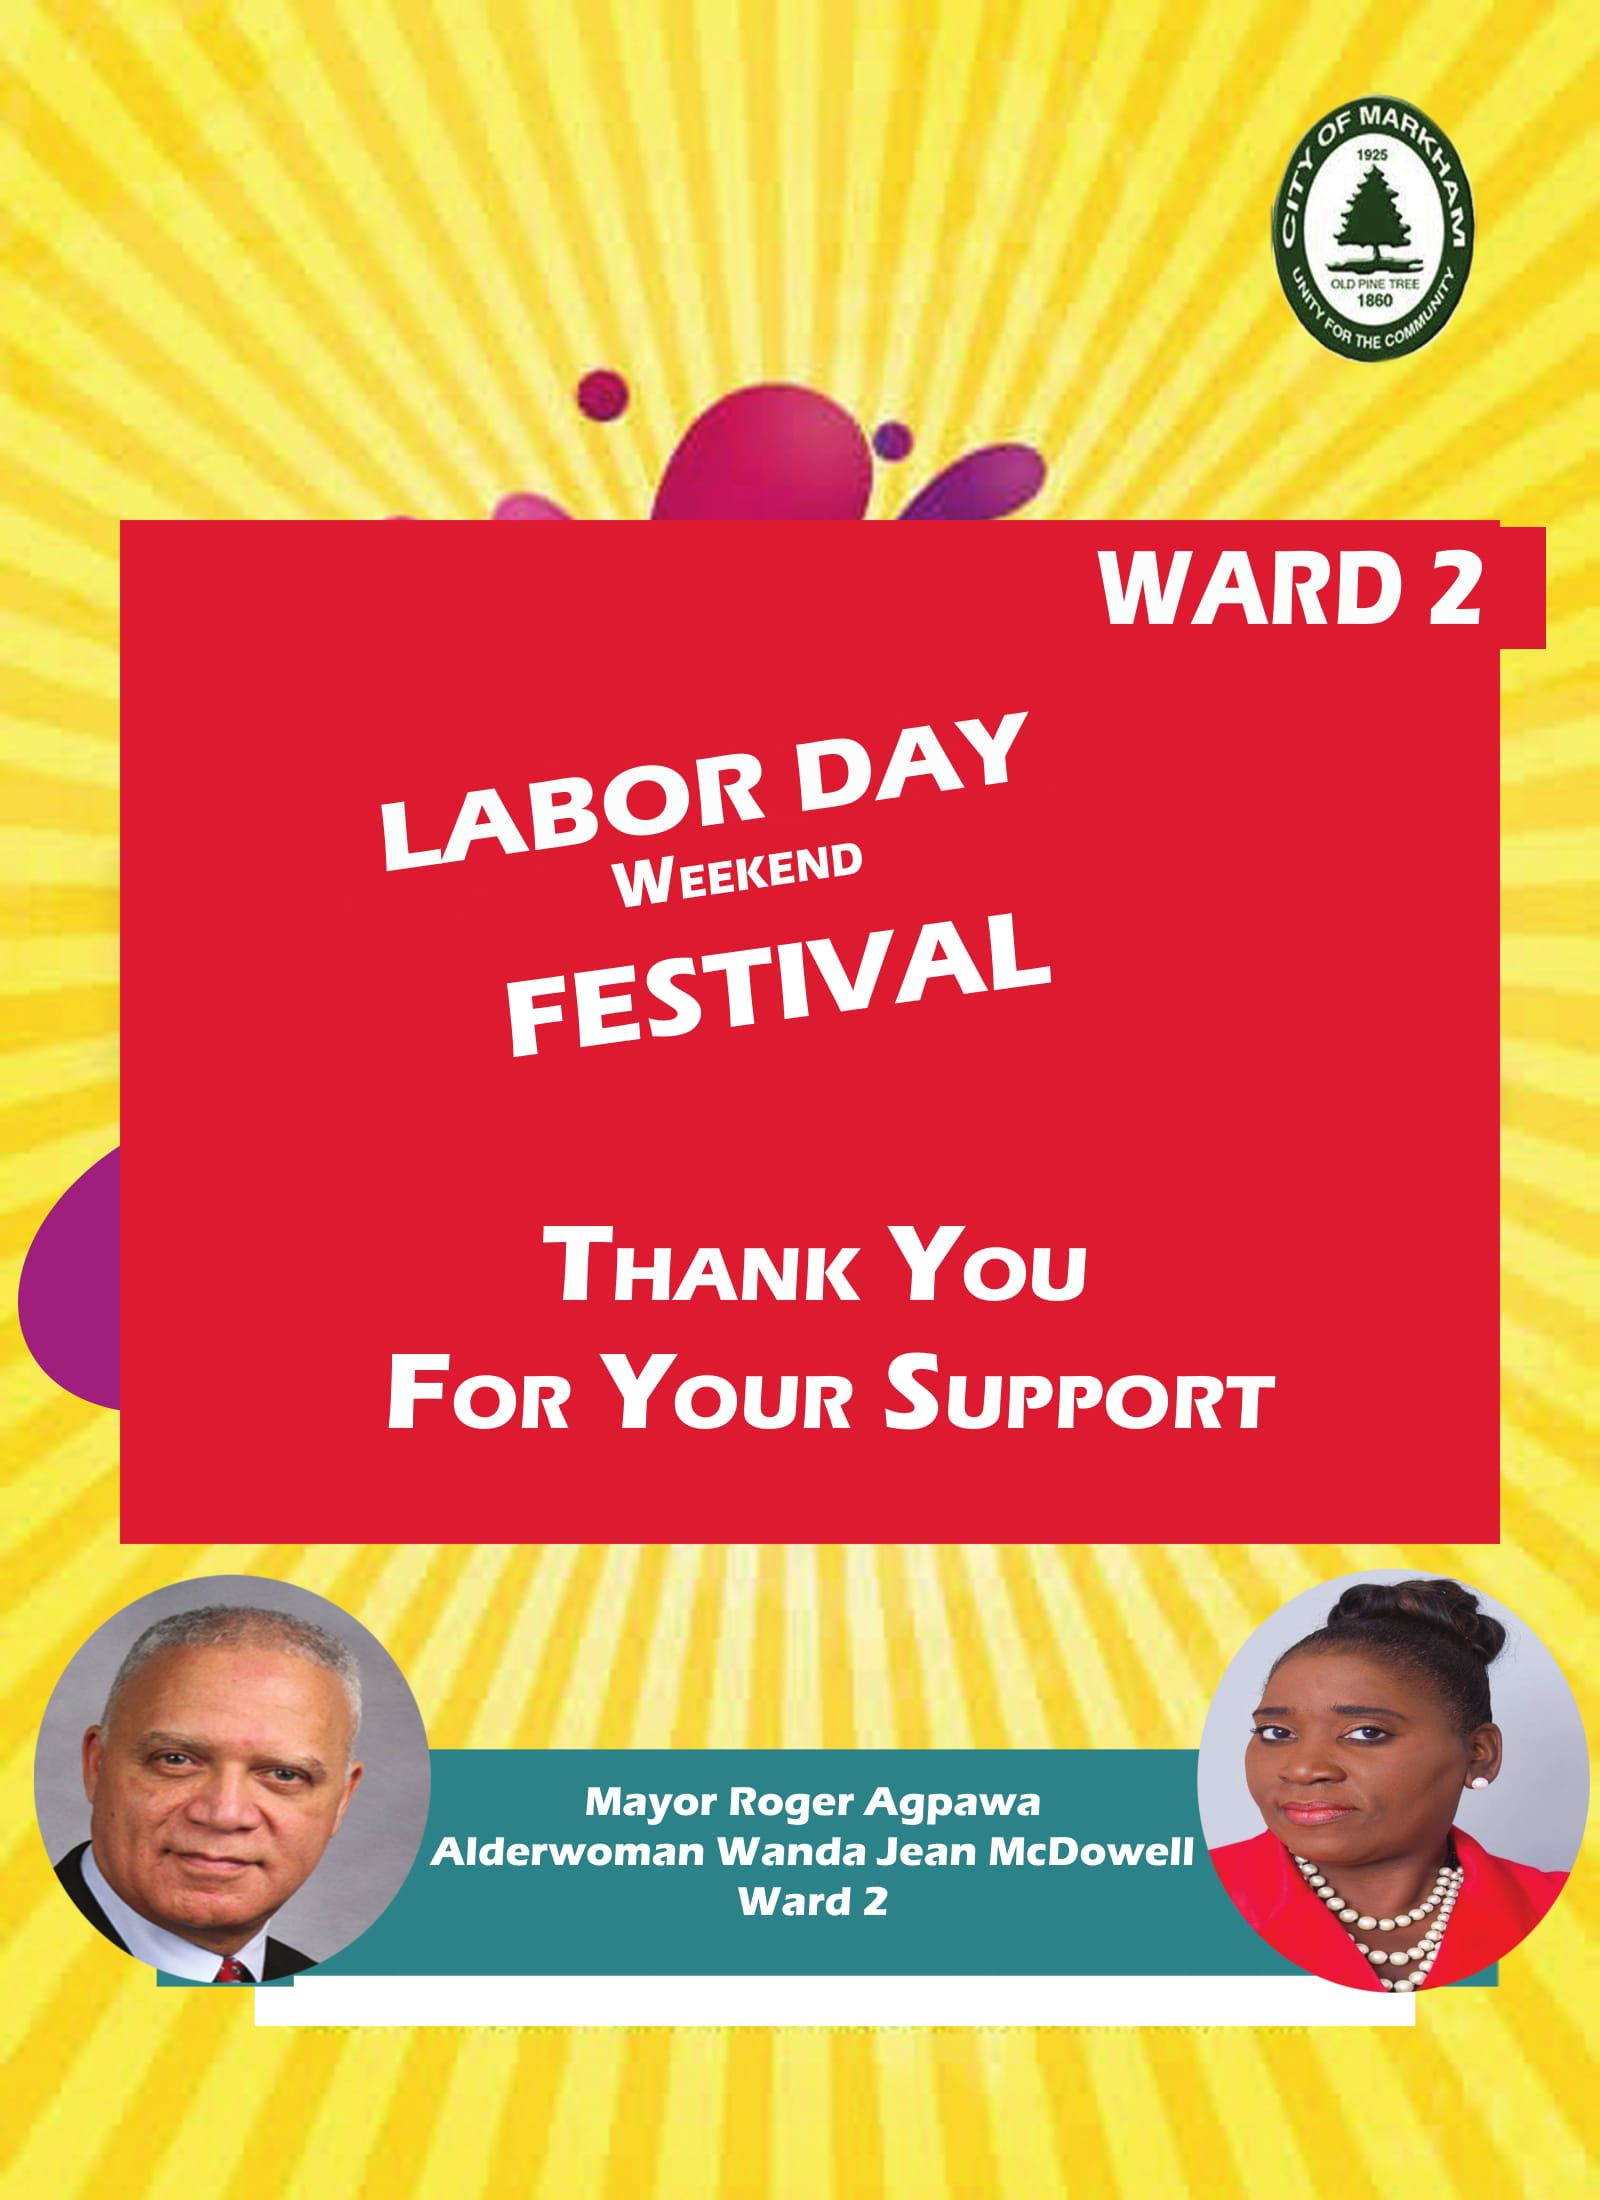 labor day flyer thank you-1